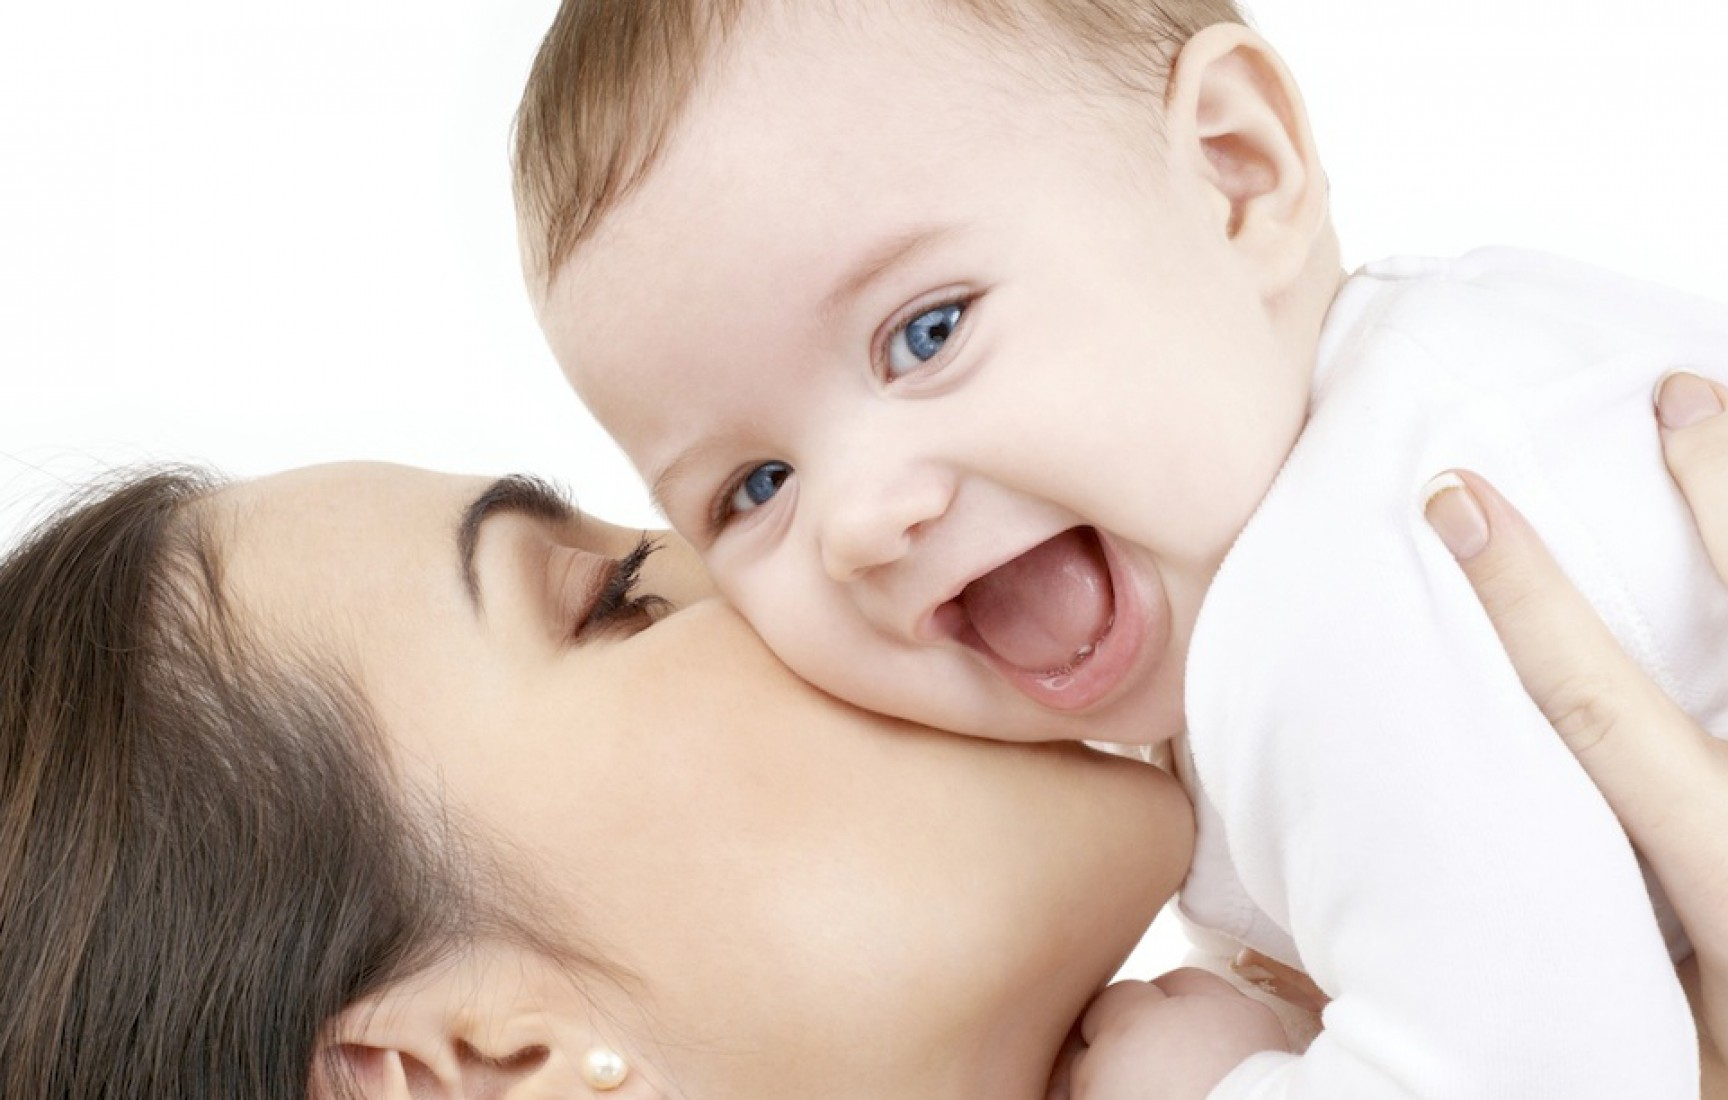 Know common infant infections which may affect your baby!